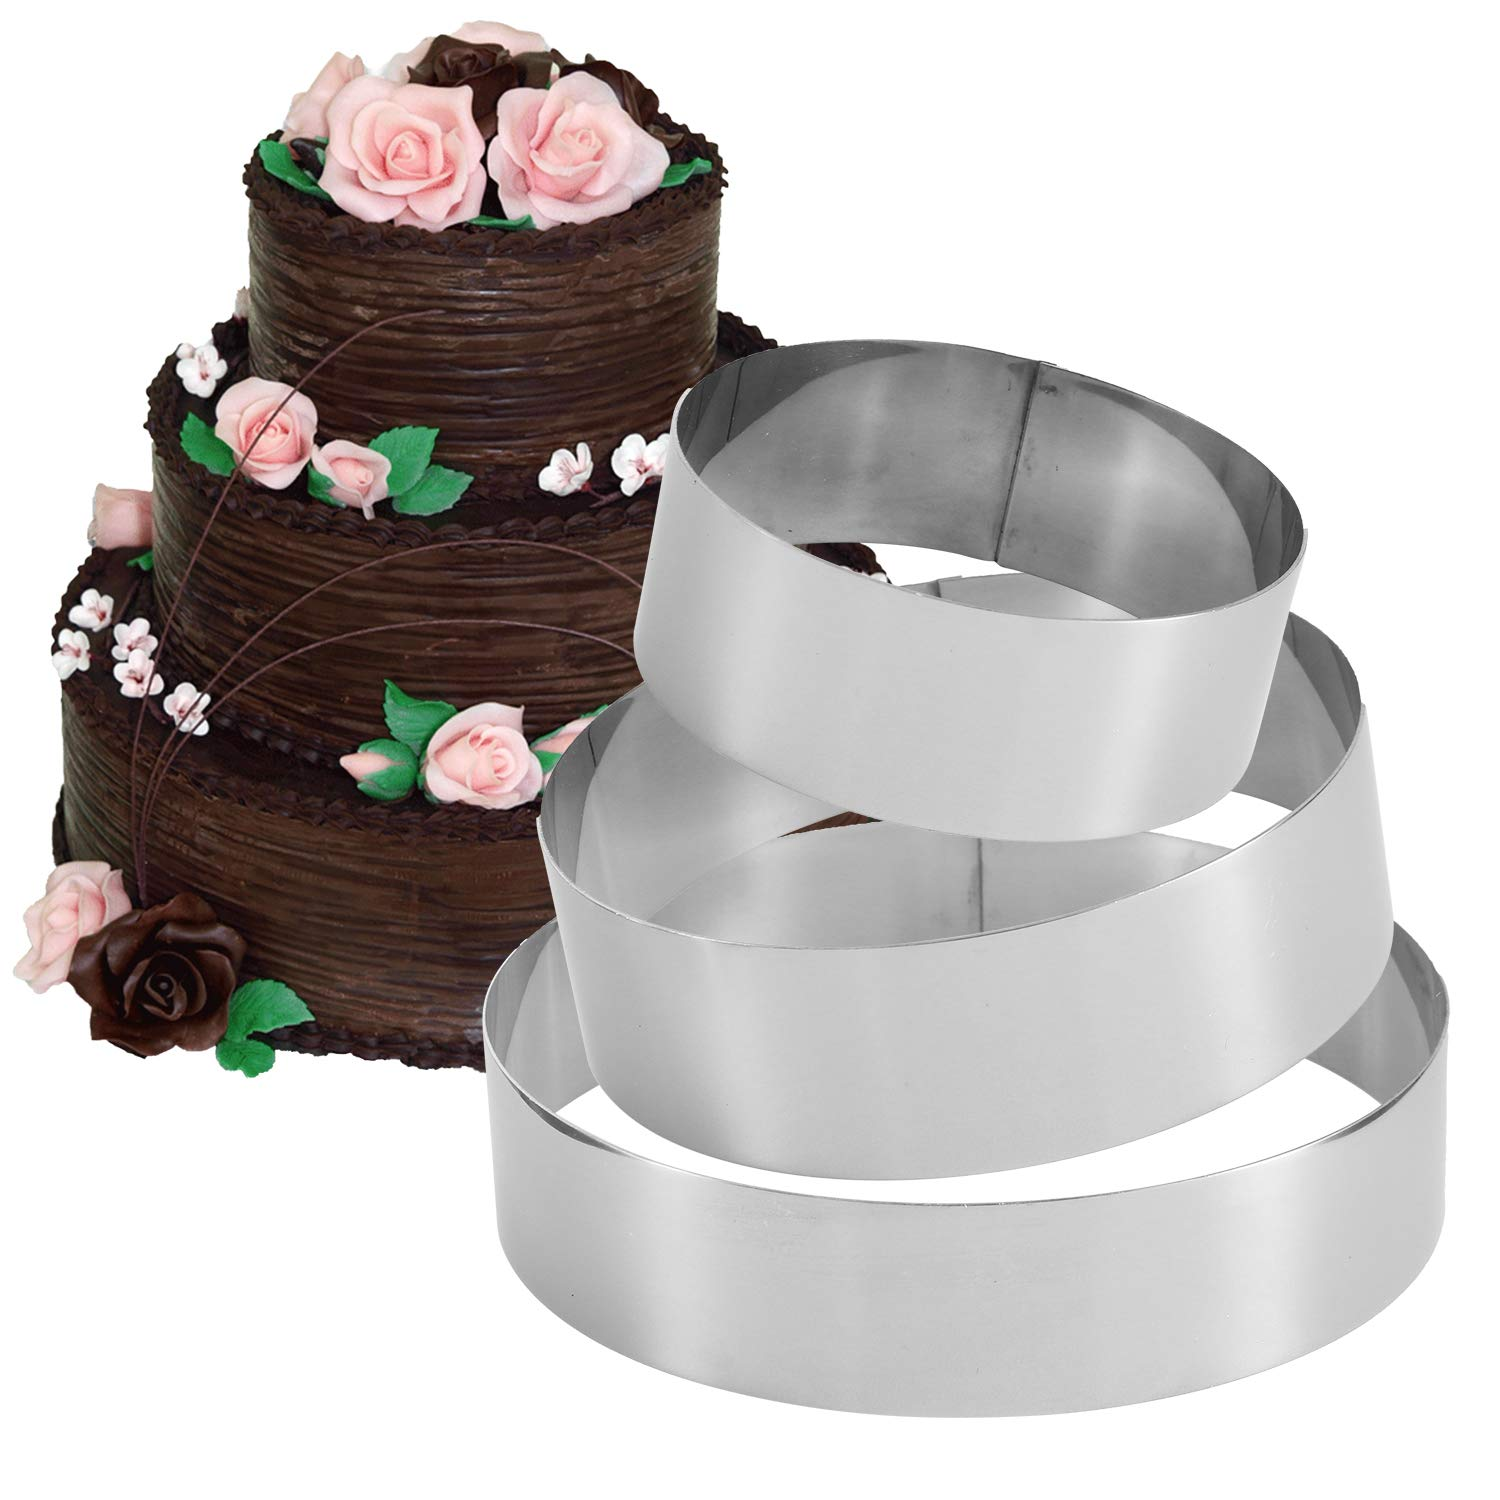 3 Tier Round Ring Mold - Stainless Steel 3 Sizes Cake Rings Molding for Baking or Cooking